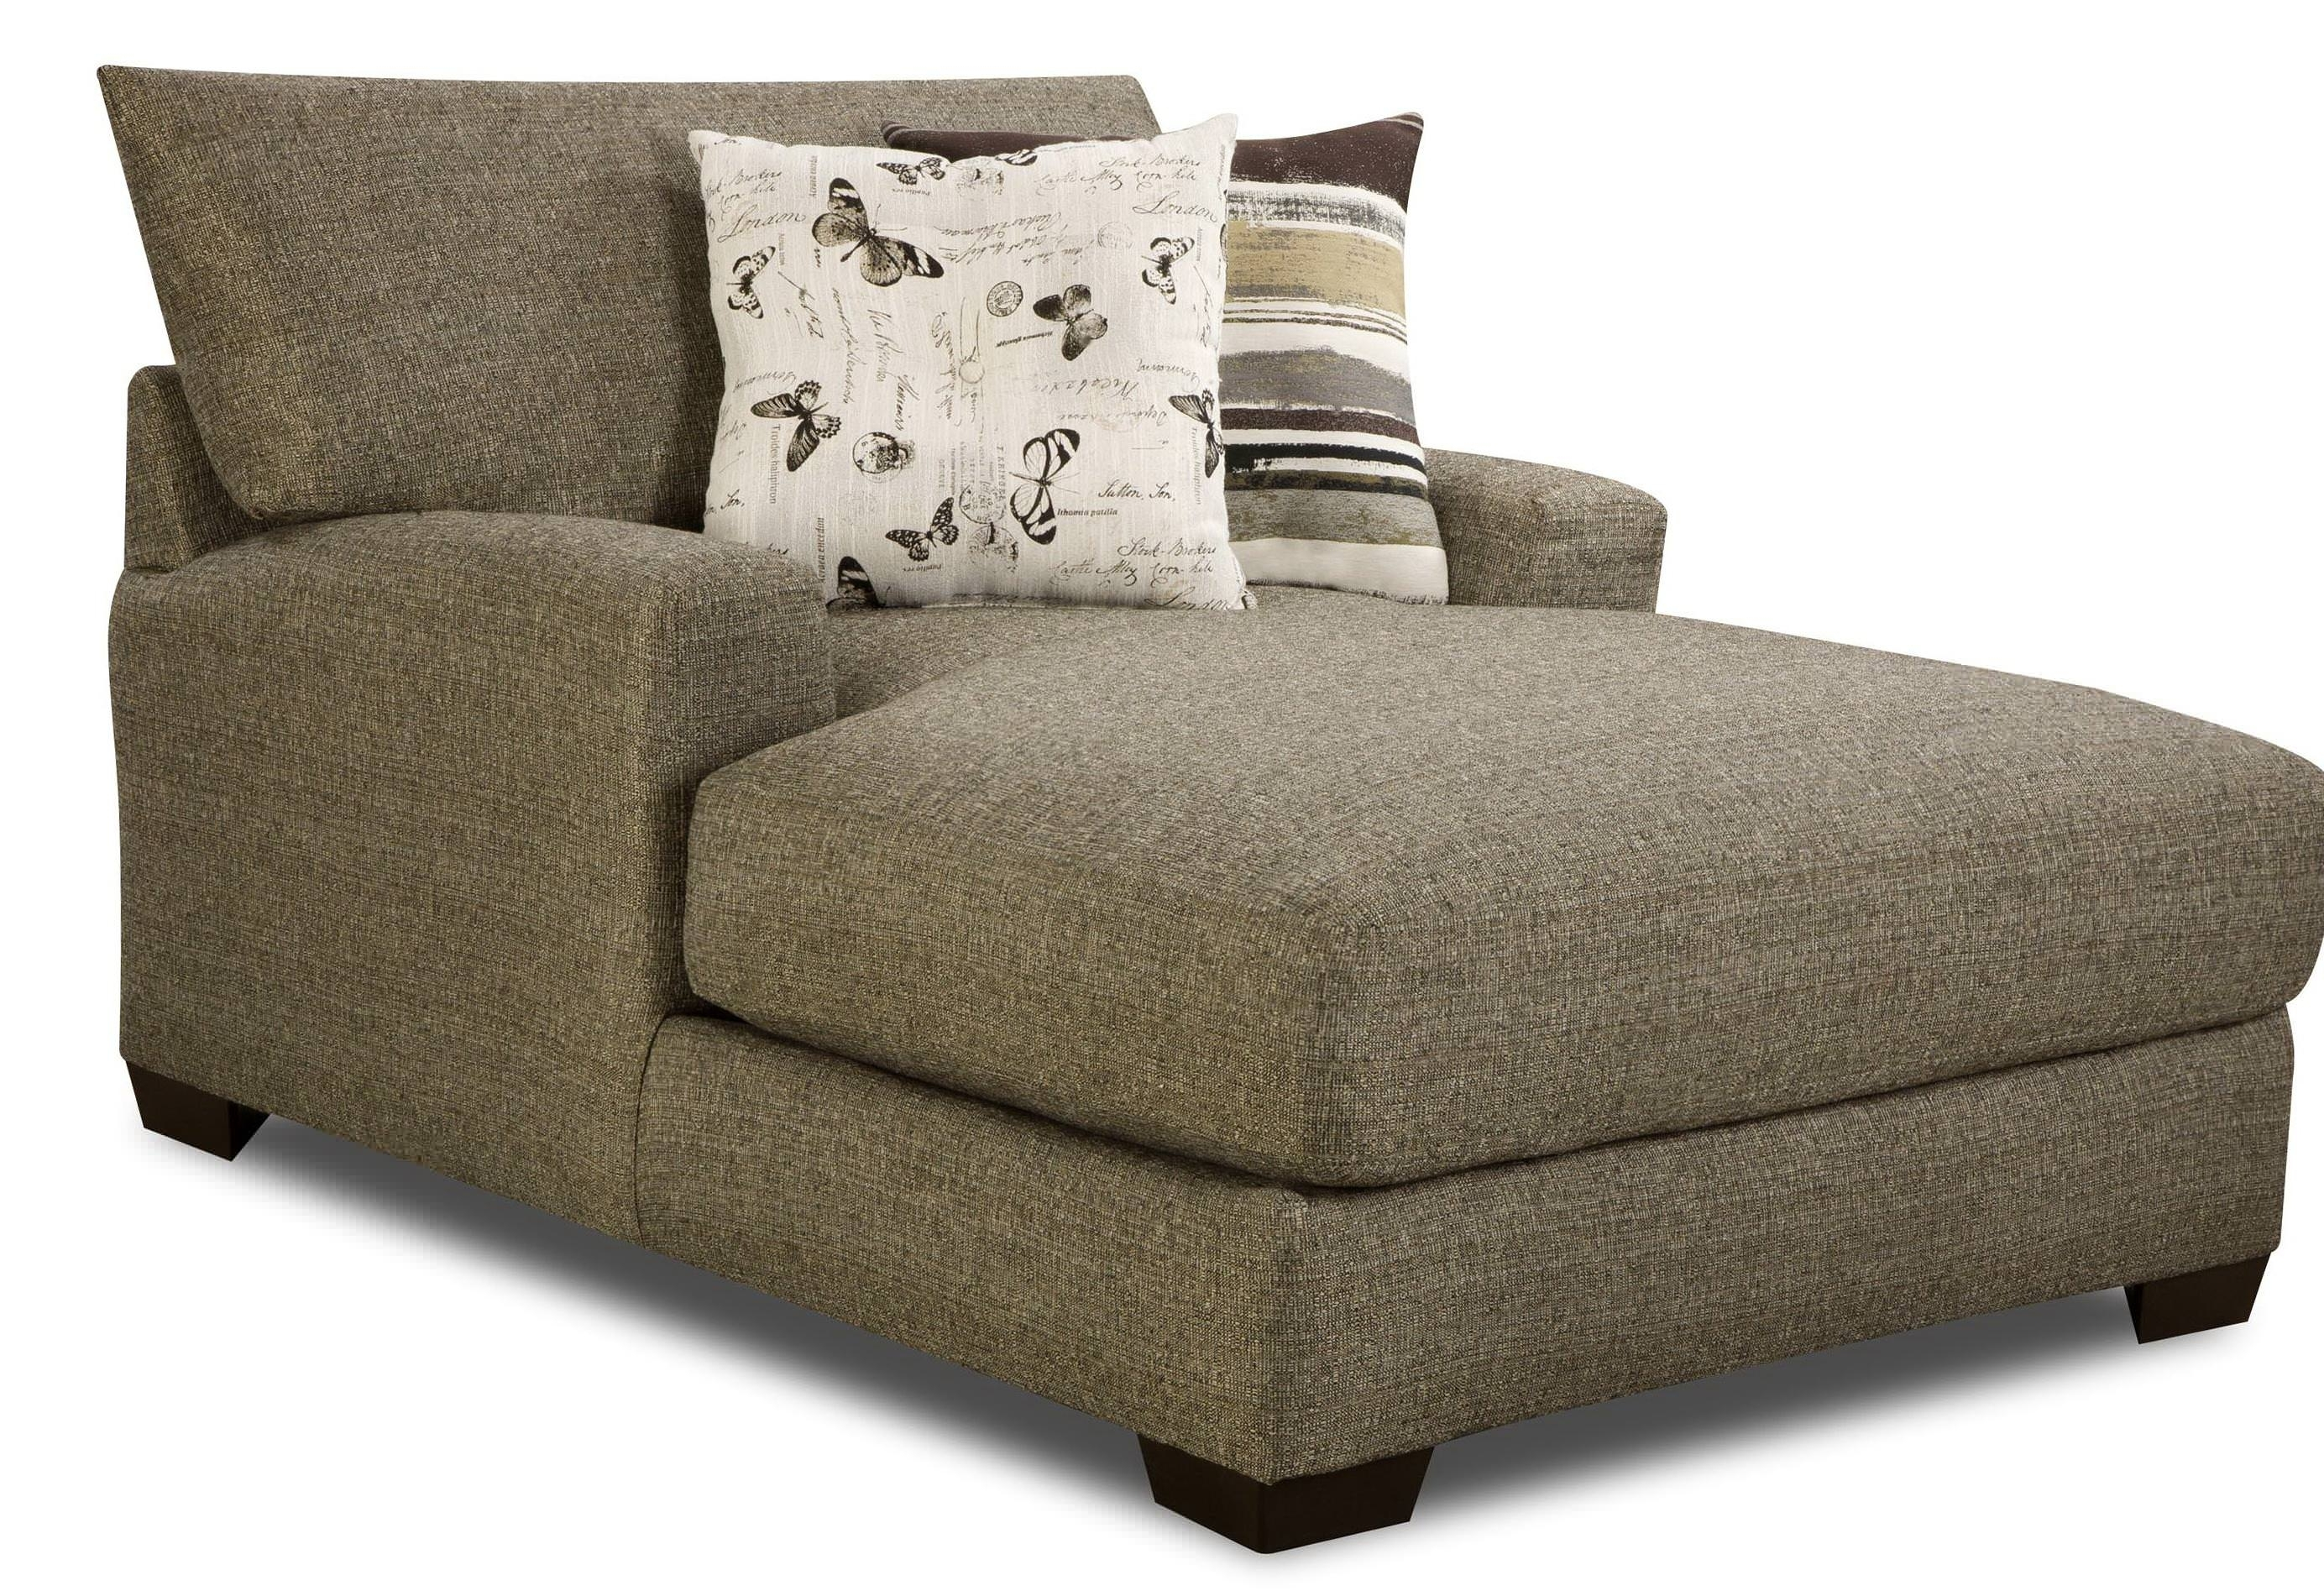 Well Known Cozy Outsized Chaise Lounge Indoor — Dahlia's Home Inside Indoor Double Chaises (View 15 of 15)